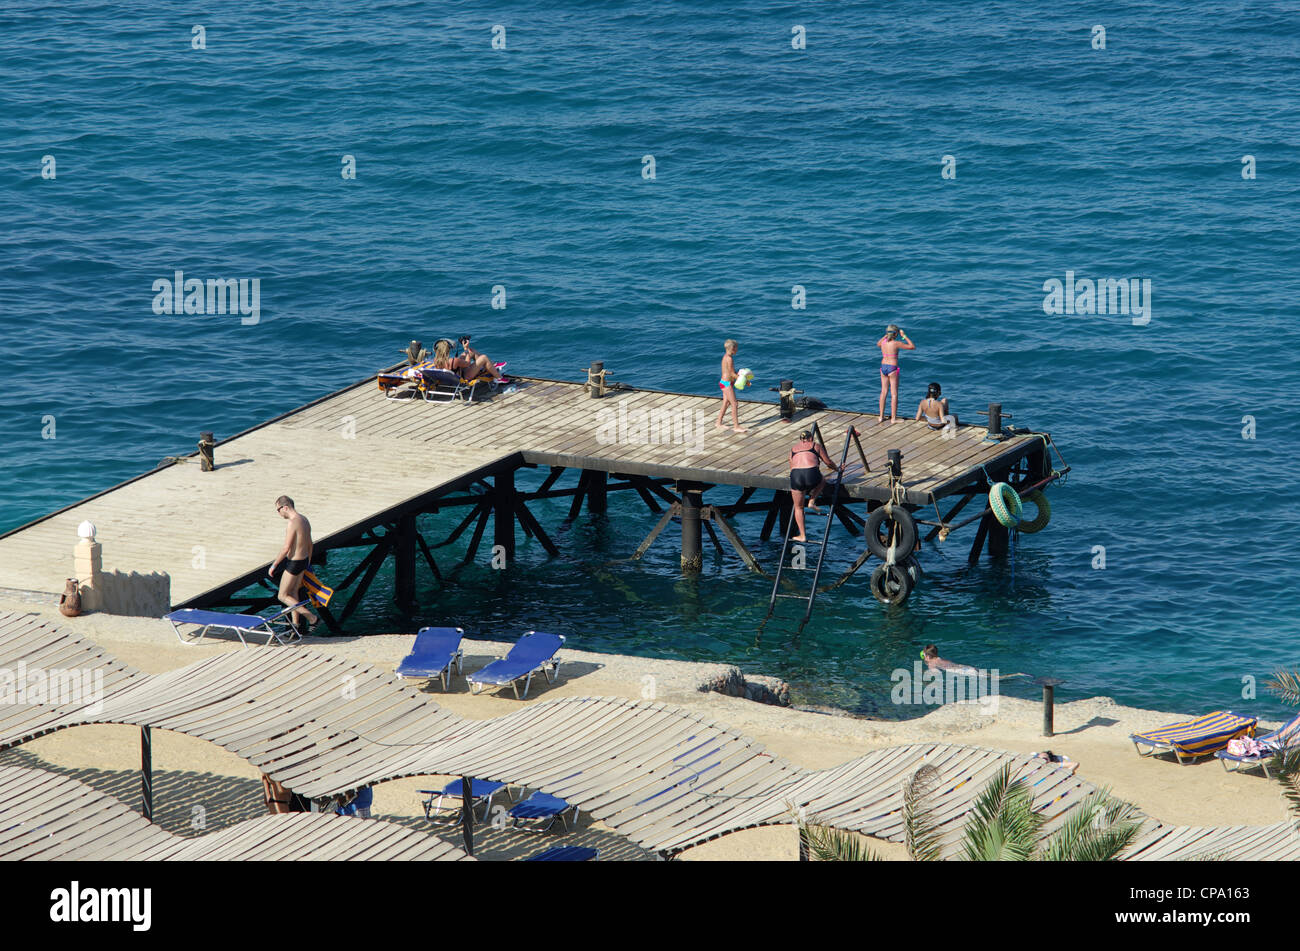 People on a tropical beach, pier, berth, coast of Red Sea, hotel resort Sphinx, Hurghada, Egypt, Africa - Stock Image